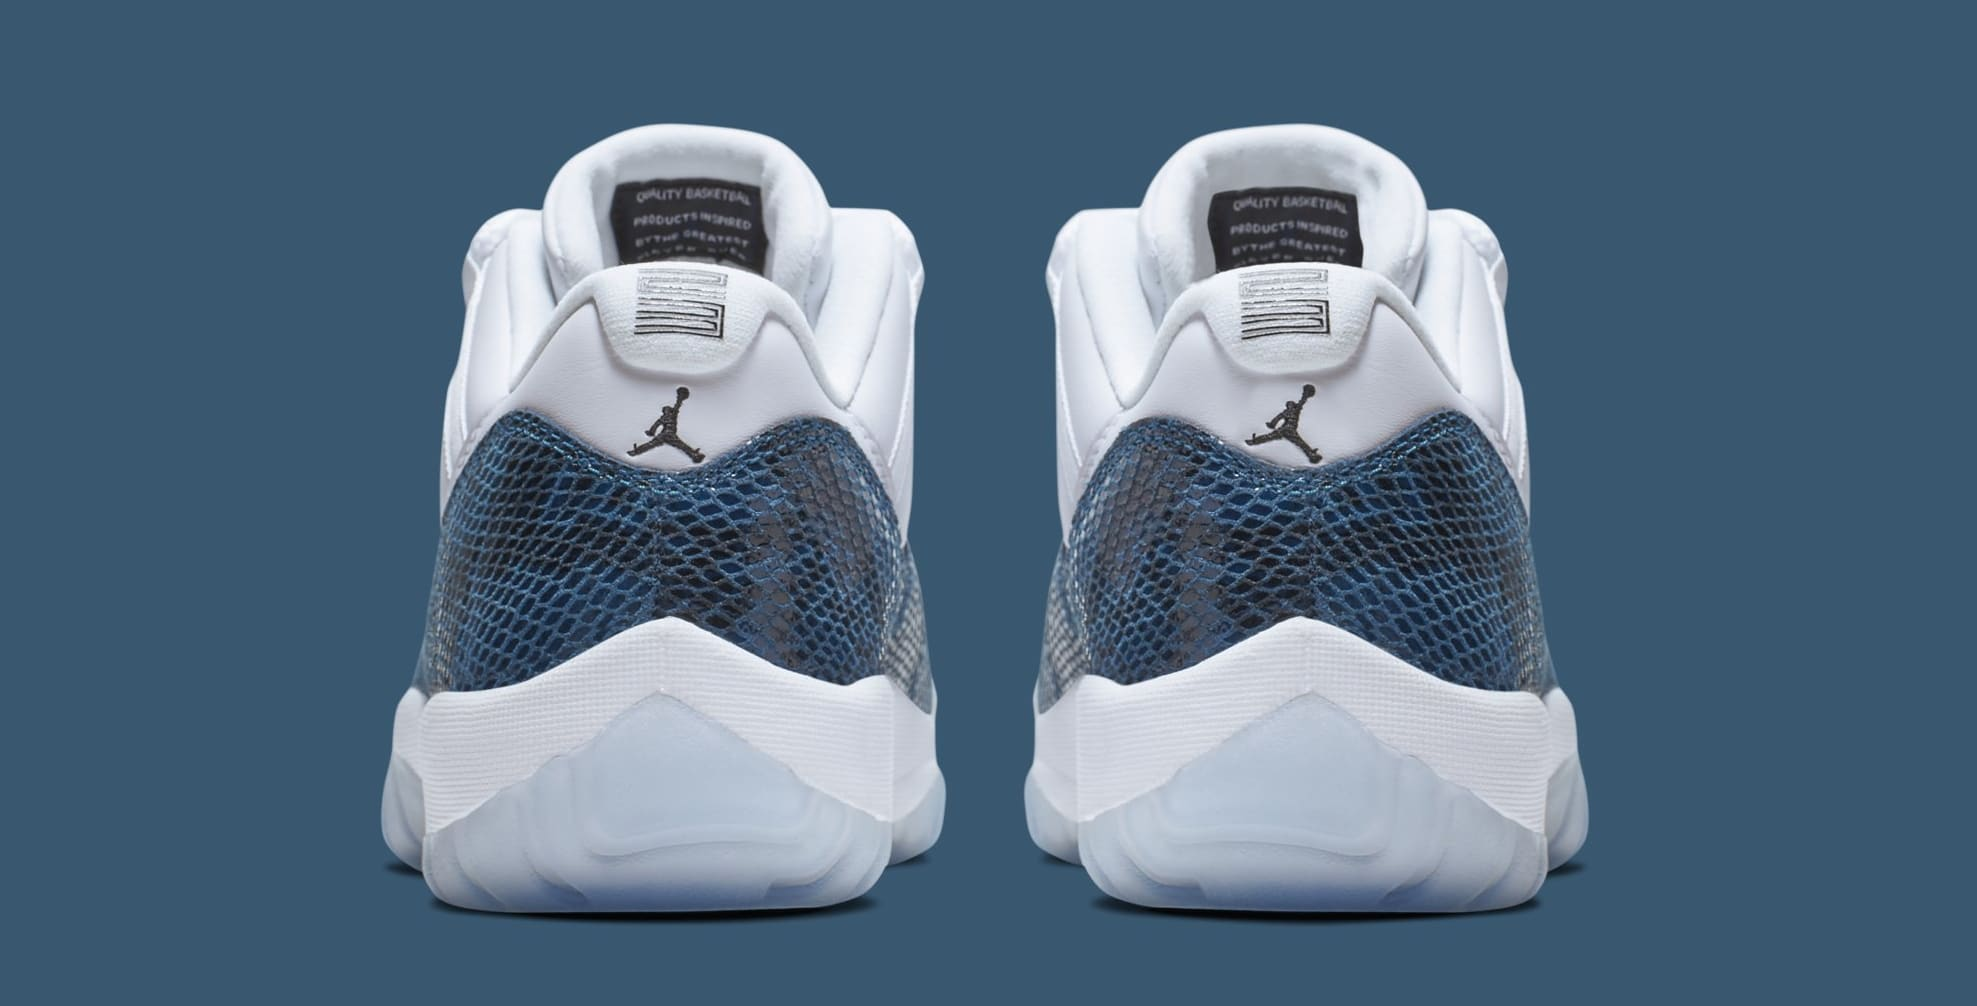 100% authentic 0cd42 d0ca3 Image via Nike Air Jordan 11 Low  Blue Snakeskin  CD6846-102 (Heel)